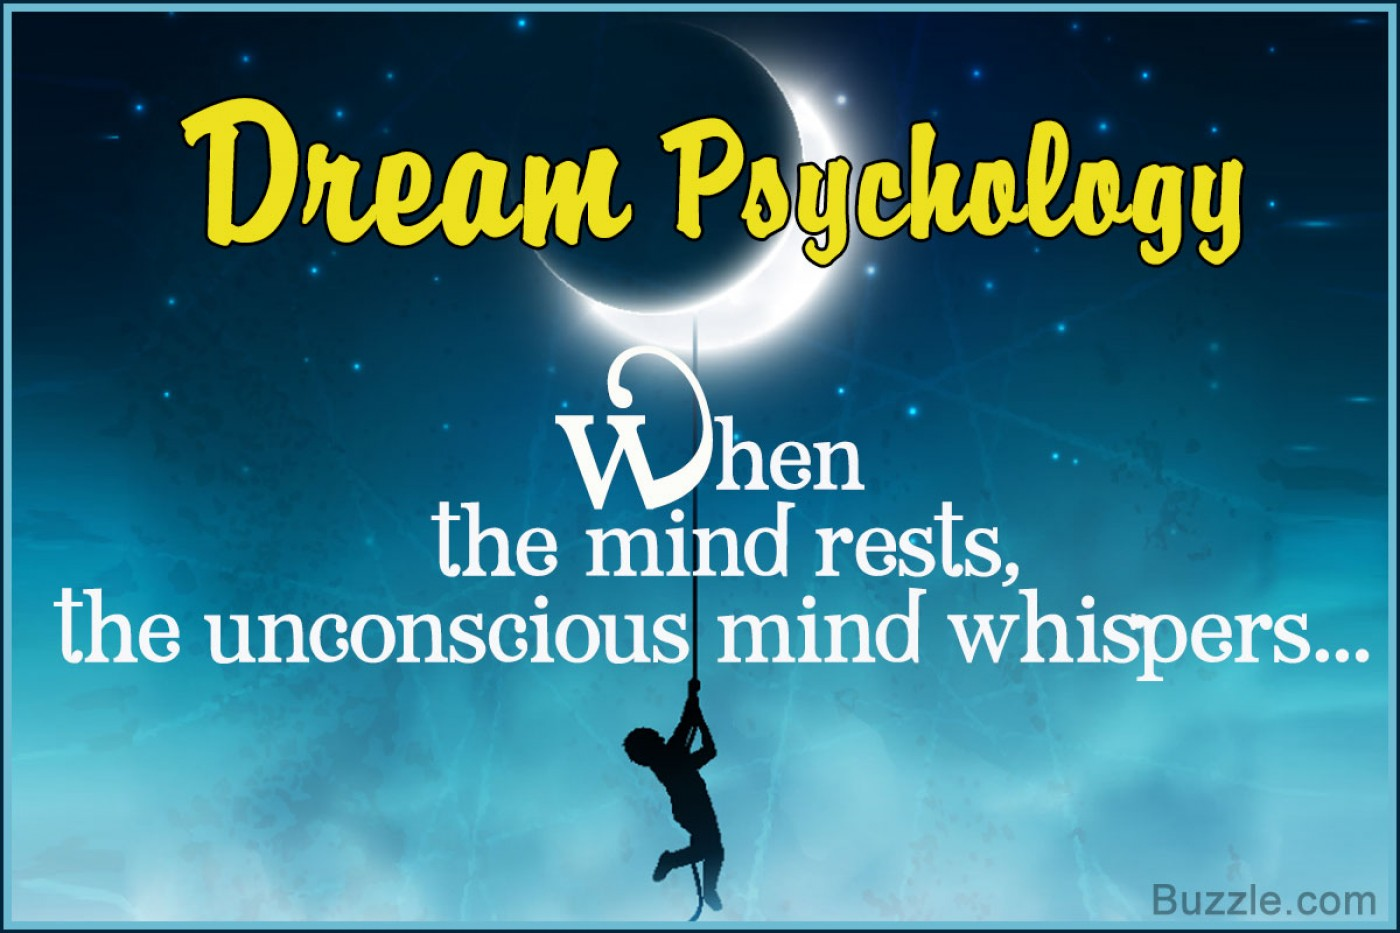 011 Psychology Of Dreams Research Paper Singular On Questions Topics 1400